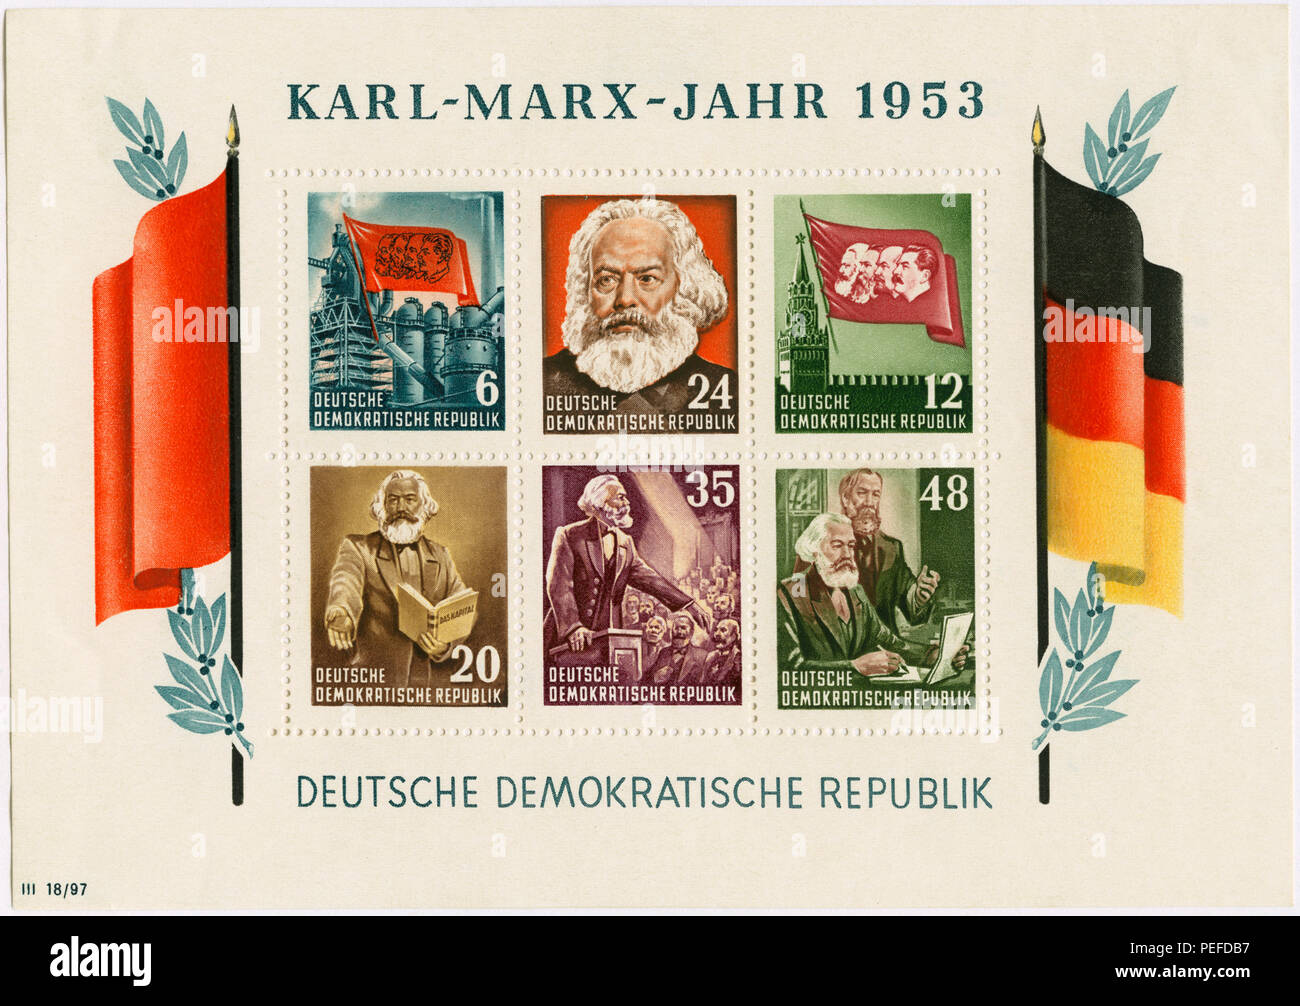 Karl Marx Commemorative Postage Stamp Sheet, East Germany, DDR, 1953 - Stock Image